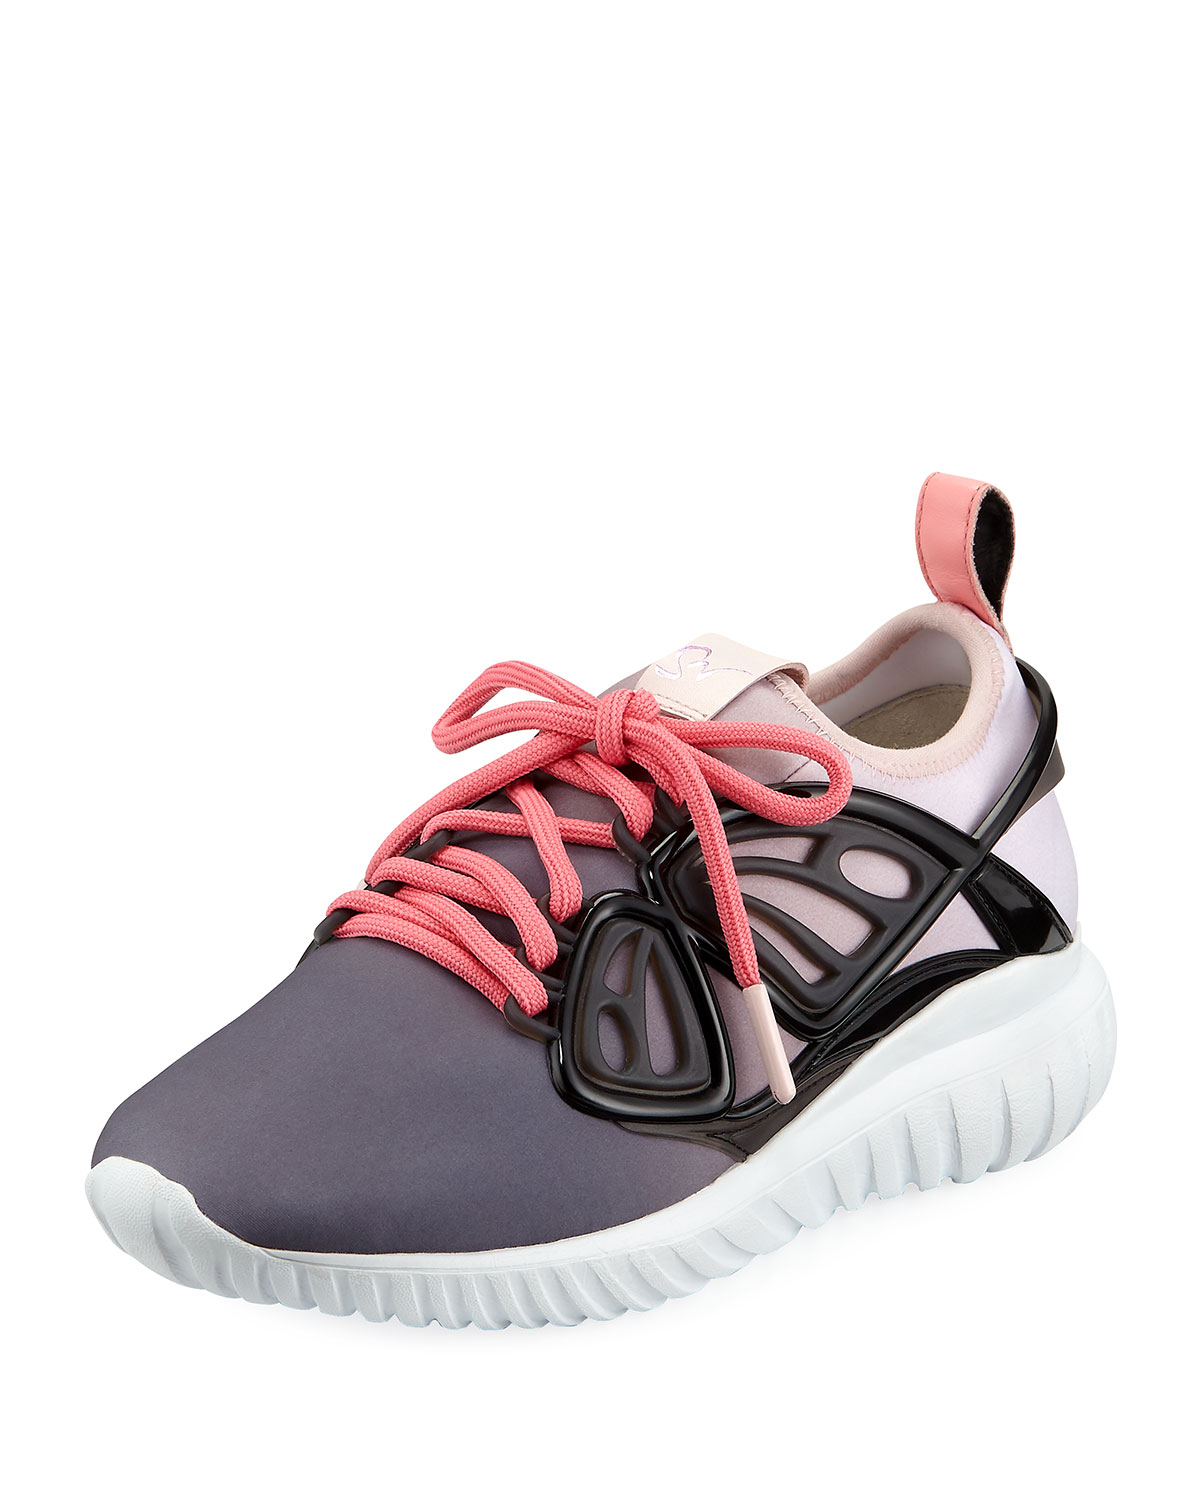 Fly By Scuba Chunky Sneakers with Vinyl Butterfly